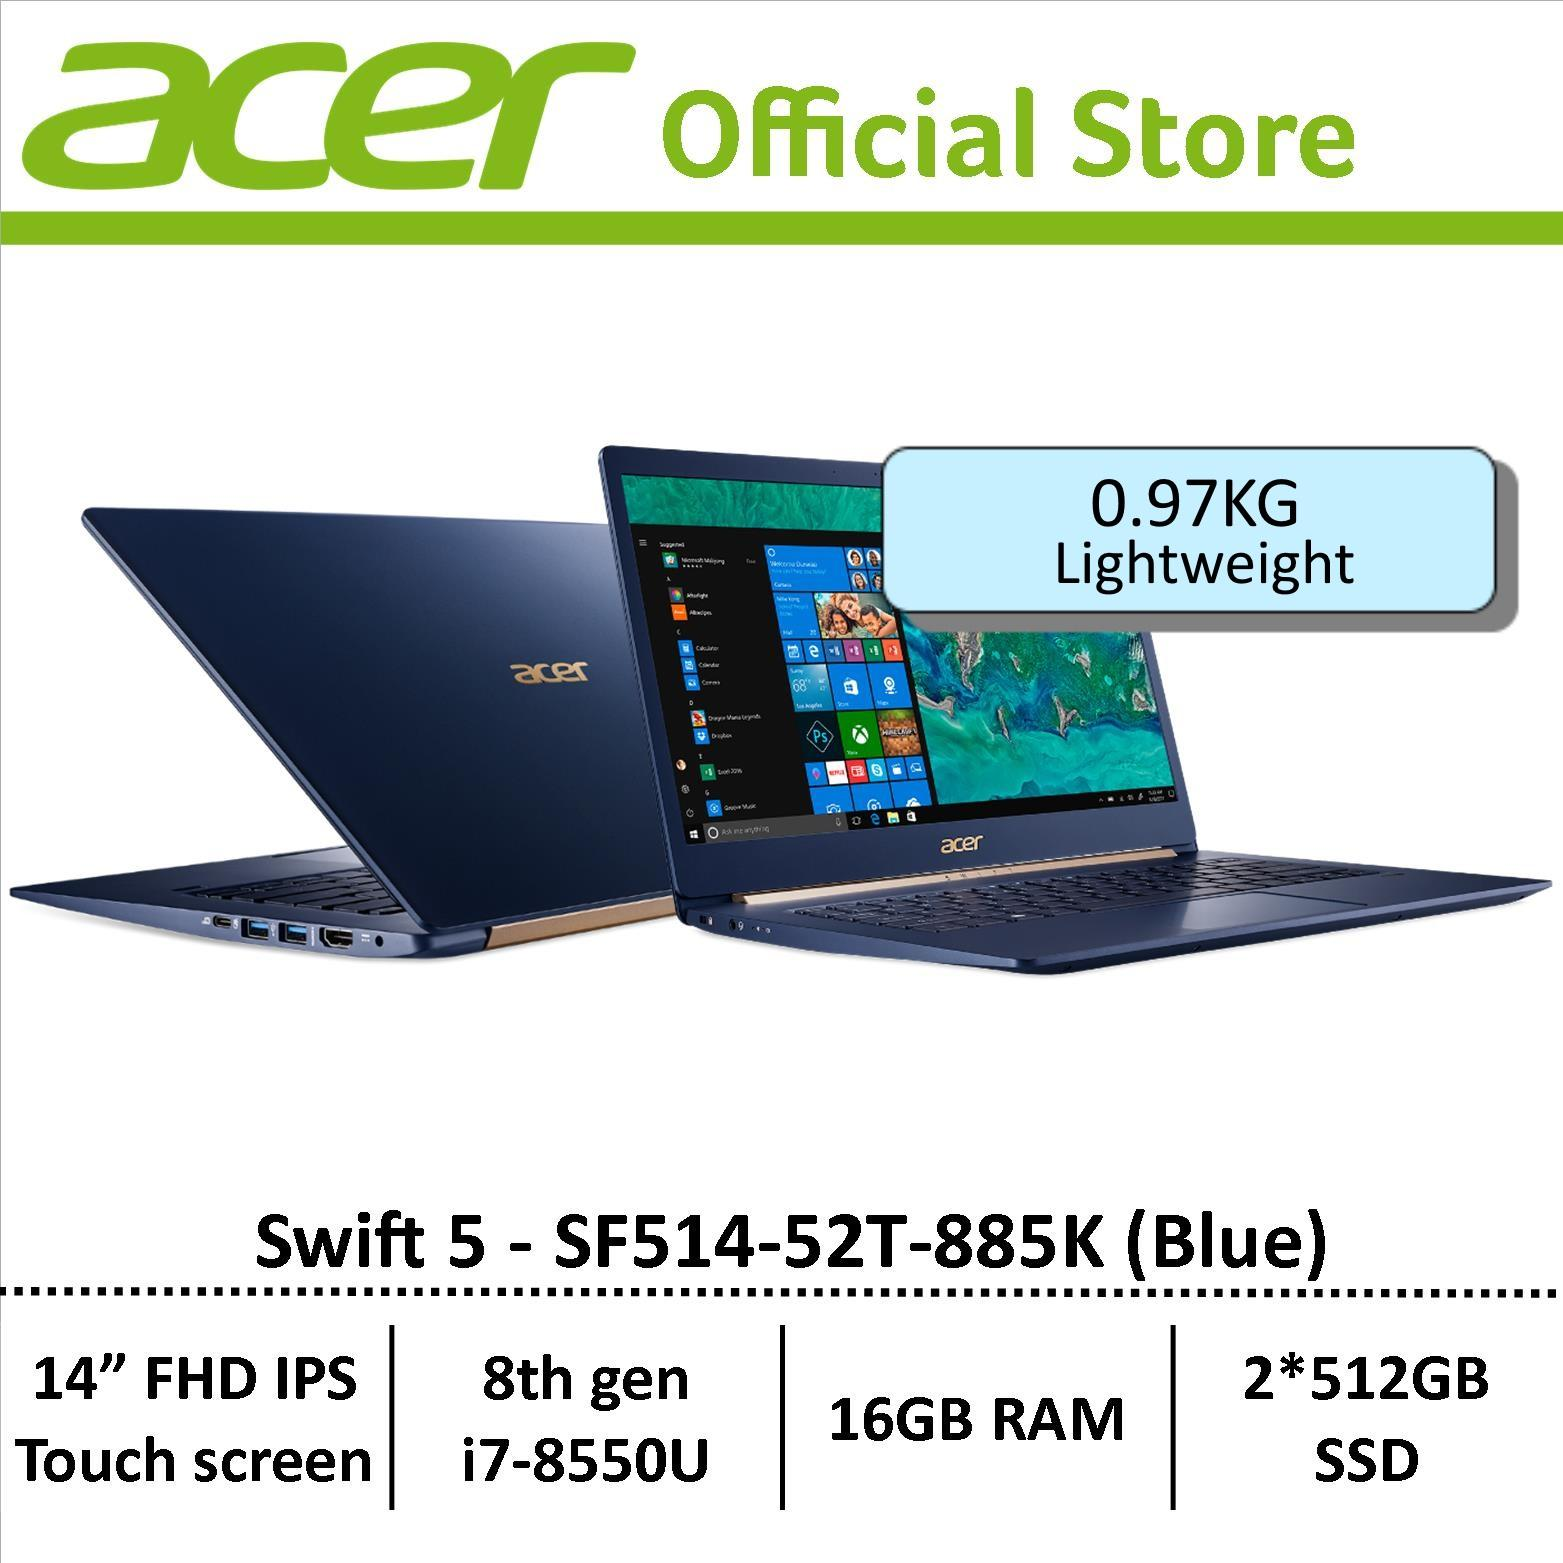 Acer Swift 5 SF514-52T-885K(Blue) Thin & Light Laptop - Free Gift with purchase